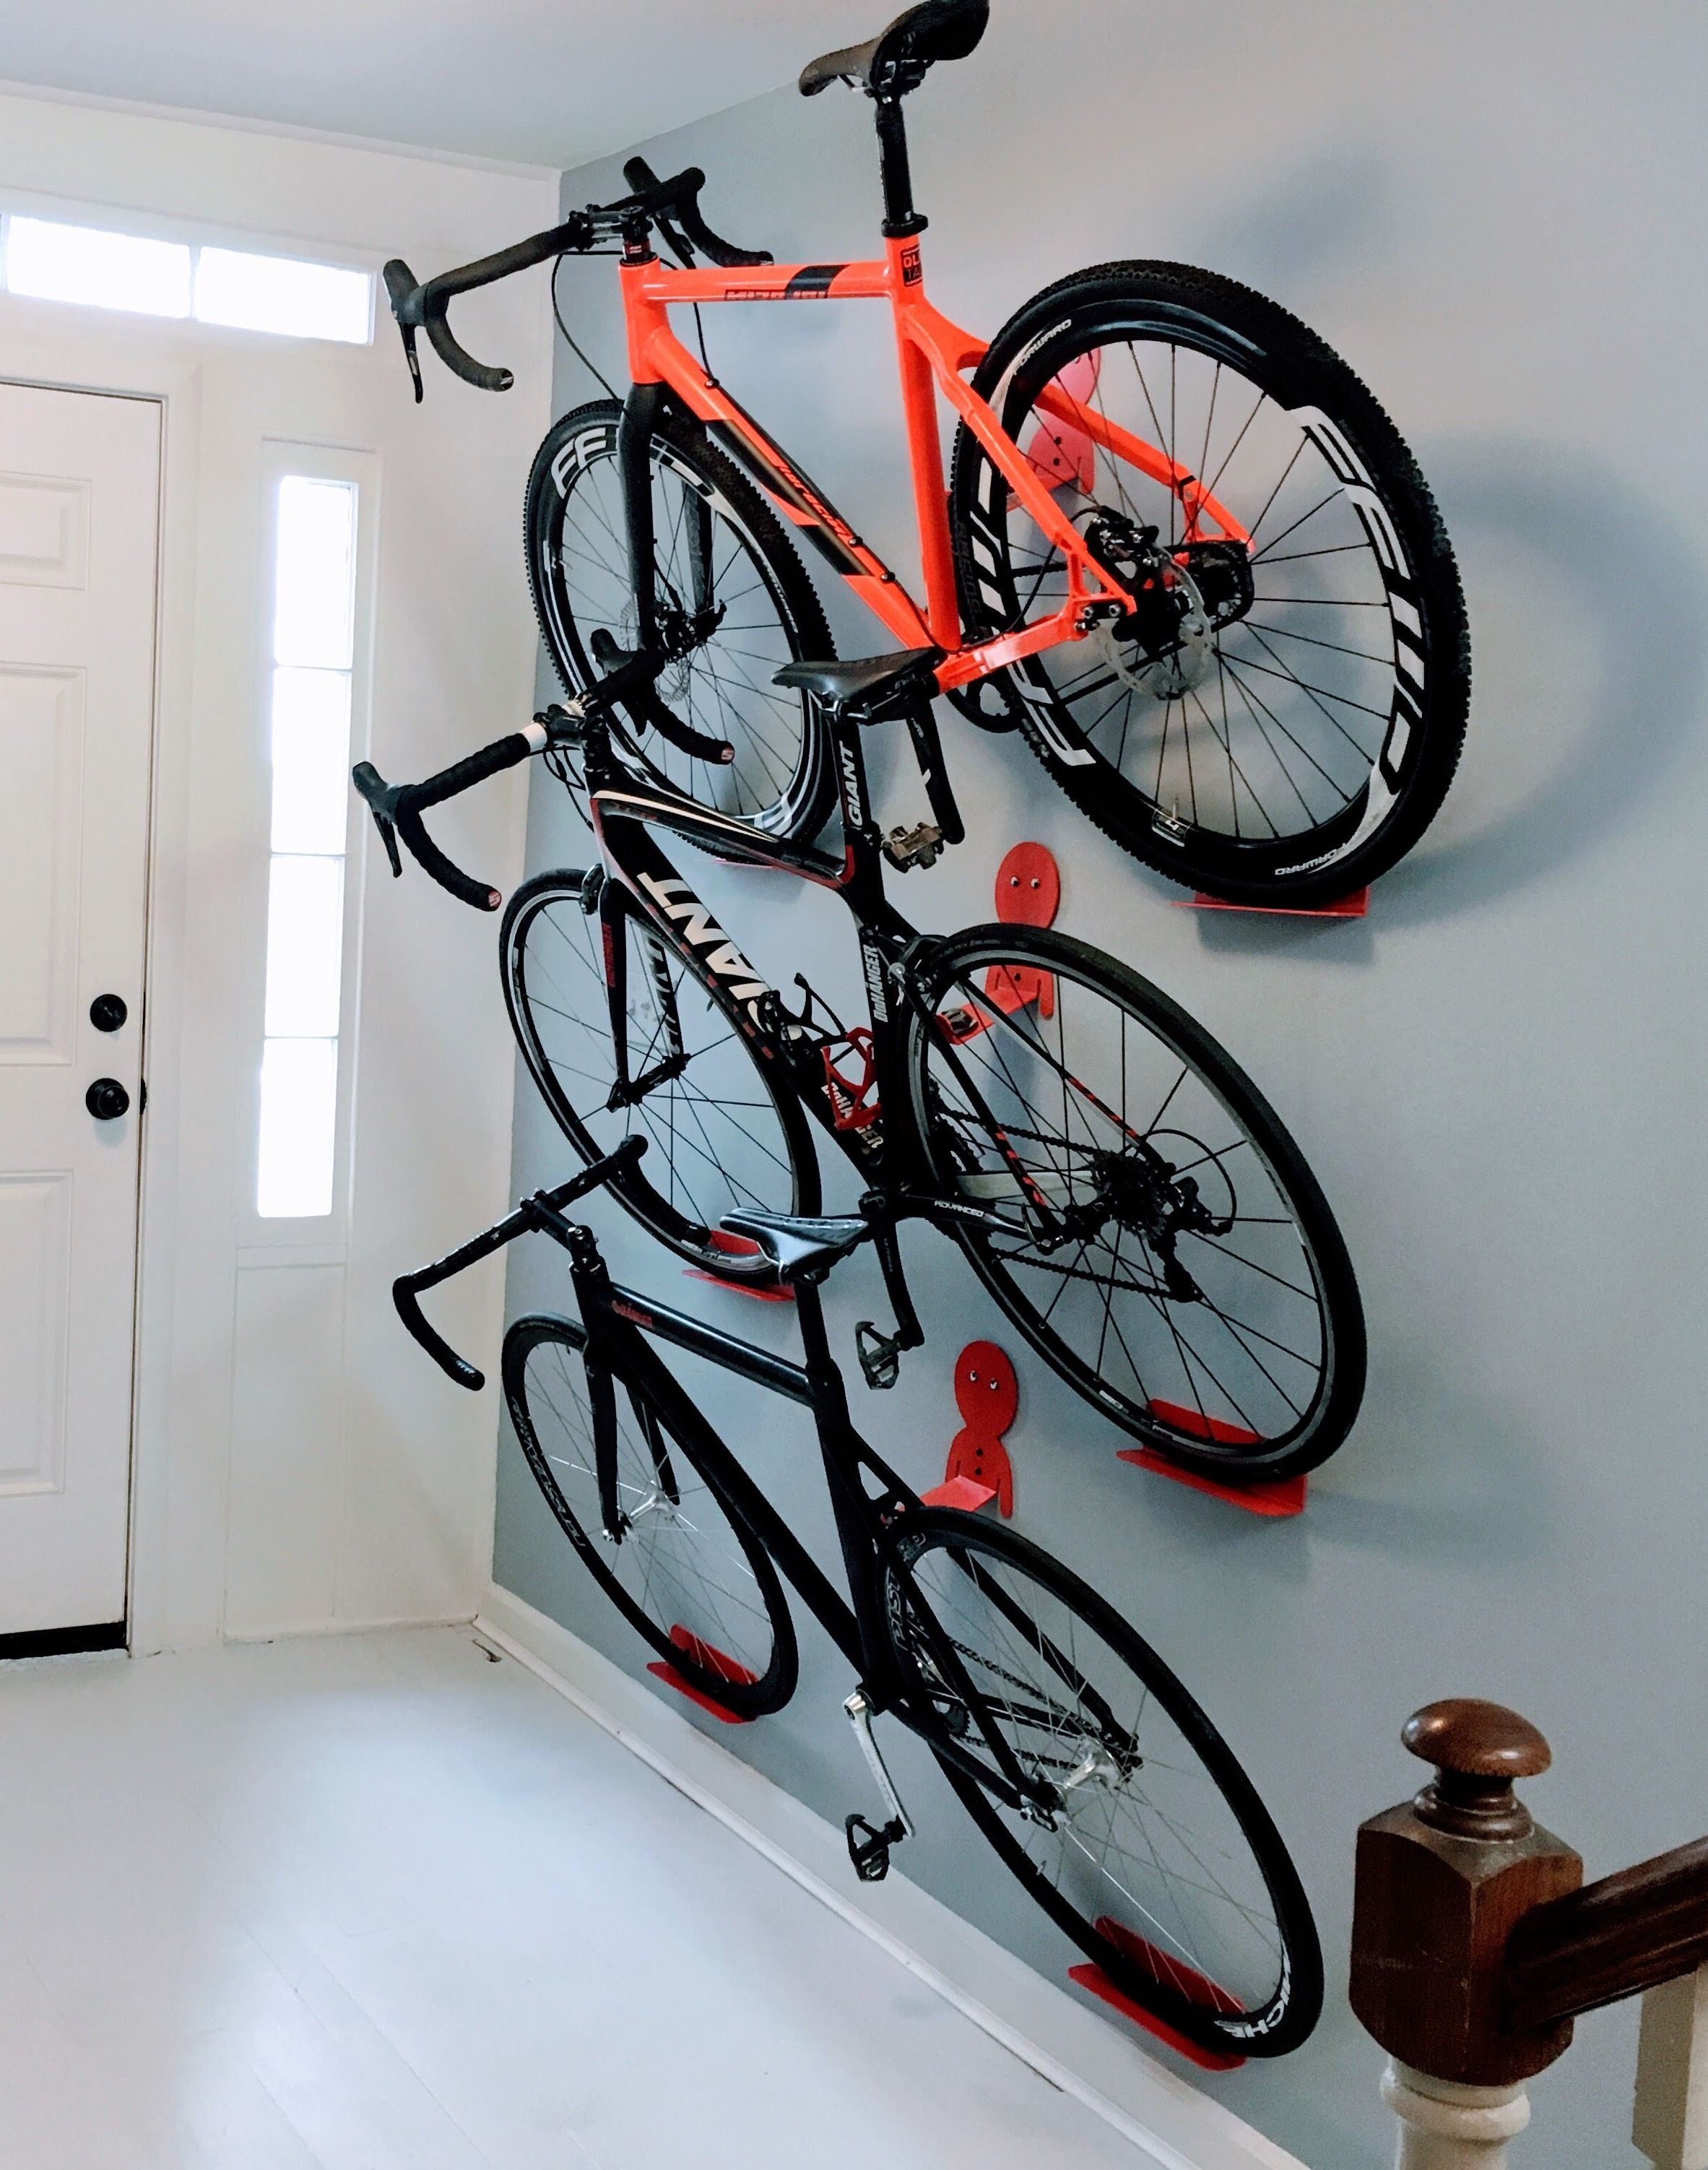 Multiple Bikes Hanging Rack System Dahanger Dan Pedal Hook Bike Rack Wall Bike Wall Mount Wall Mount Bike Rack